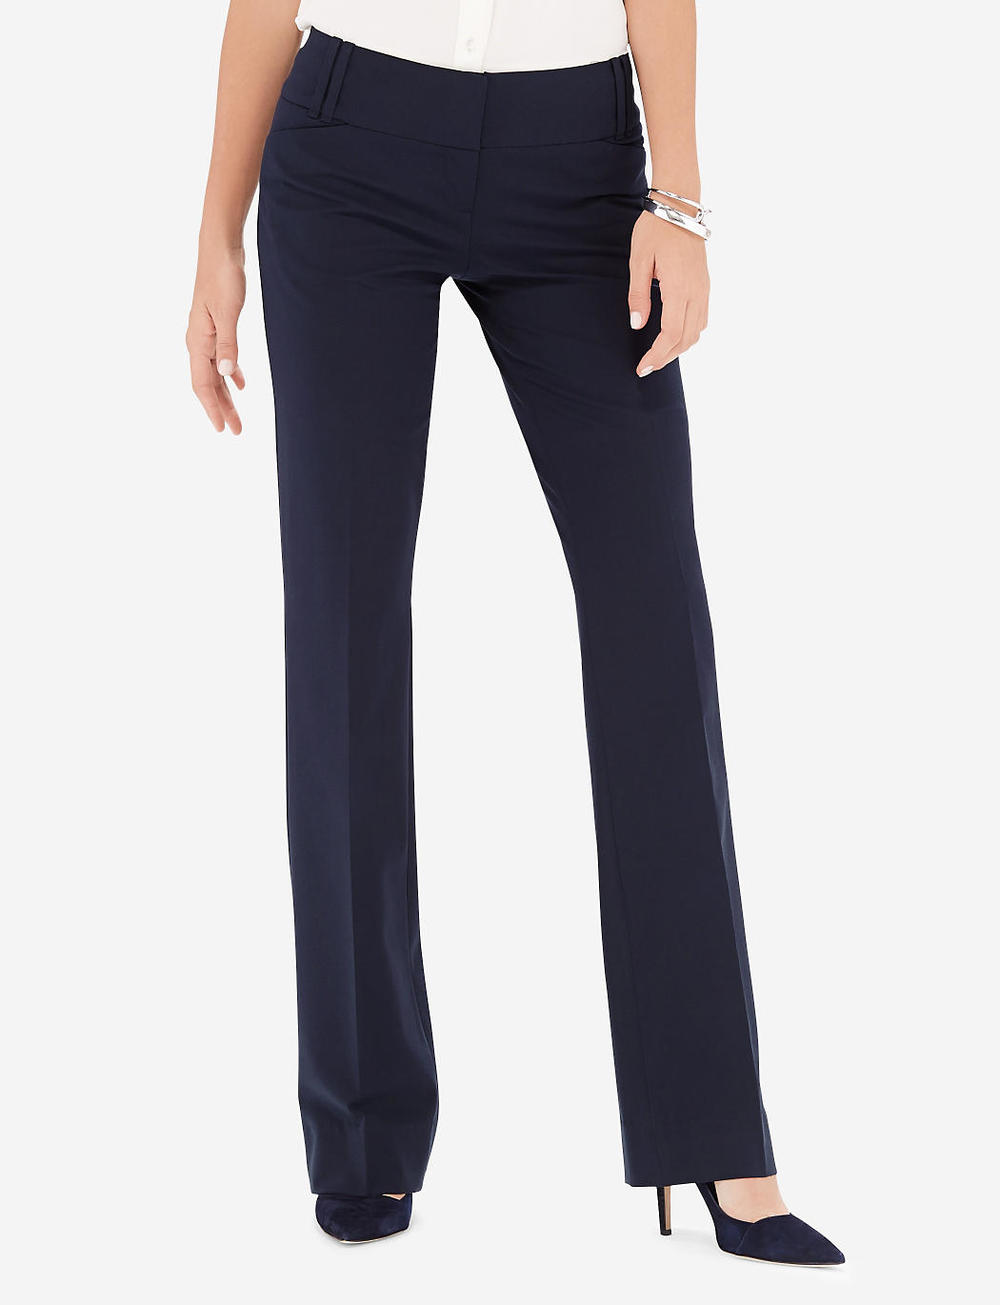 Cassidy Collection Bootcut Pants. Available in multiple colors. The Limited. Was: $79 Now: $39.